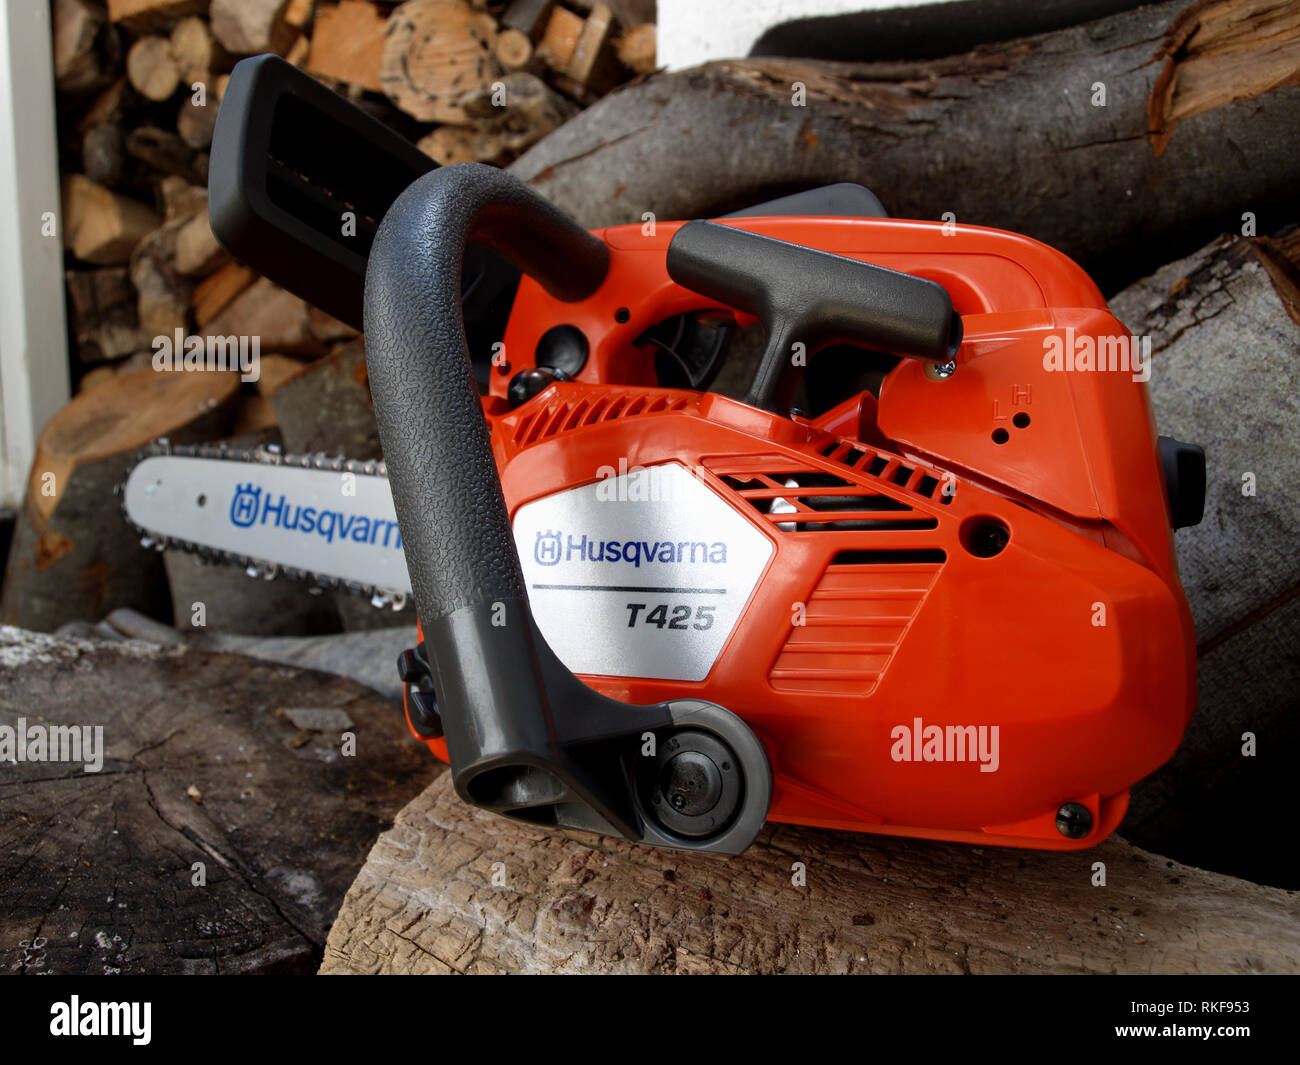 Brand new Husqvarna T425 Chain Saw on woodpile ready fro use - Stock Image